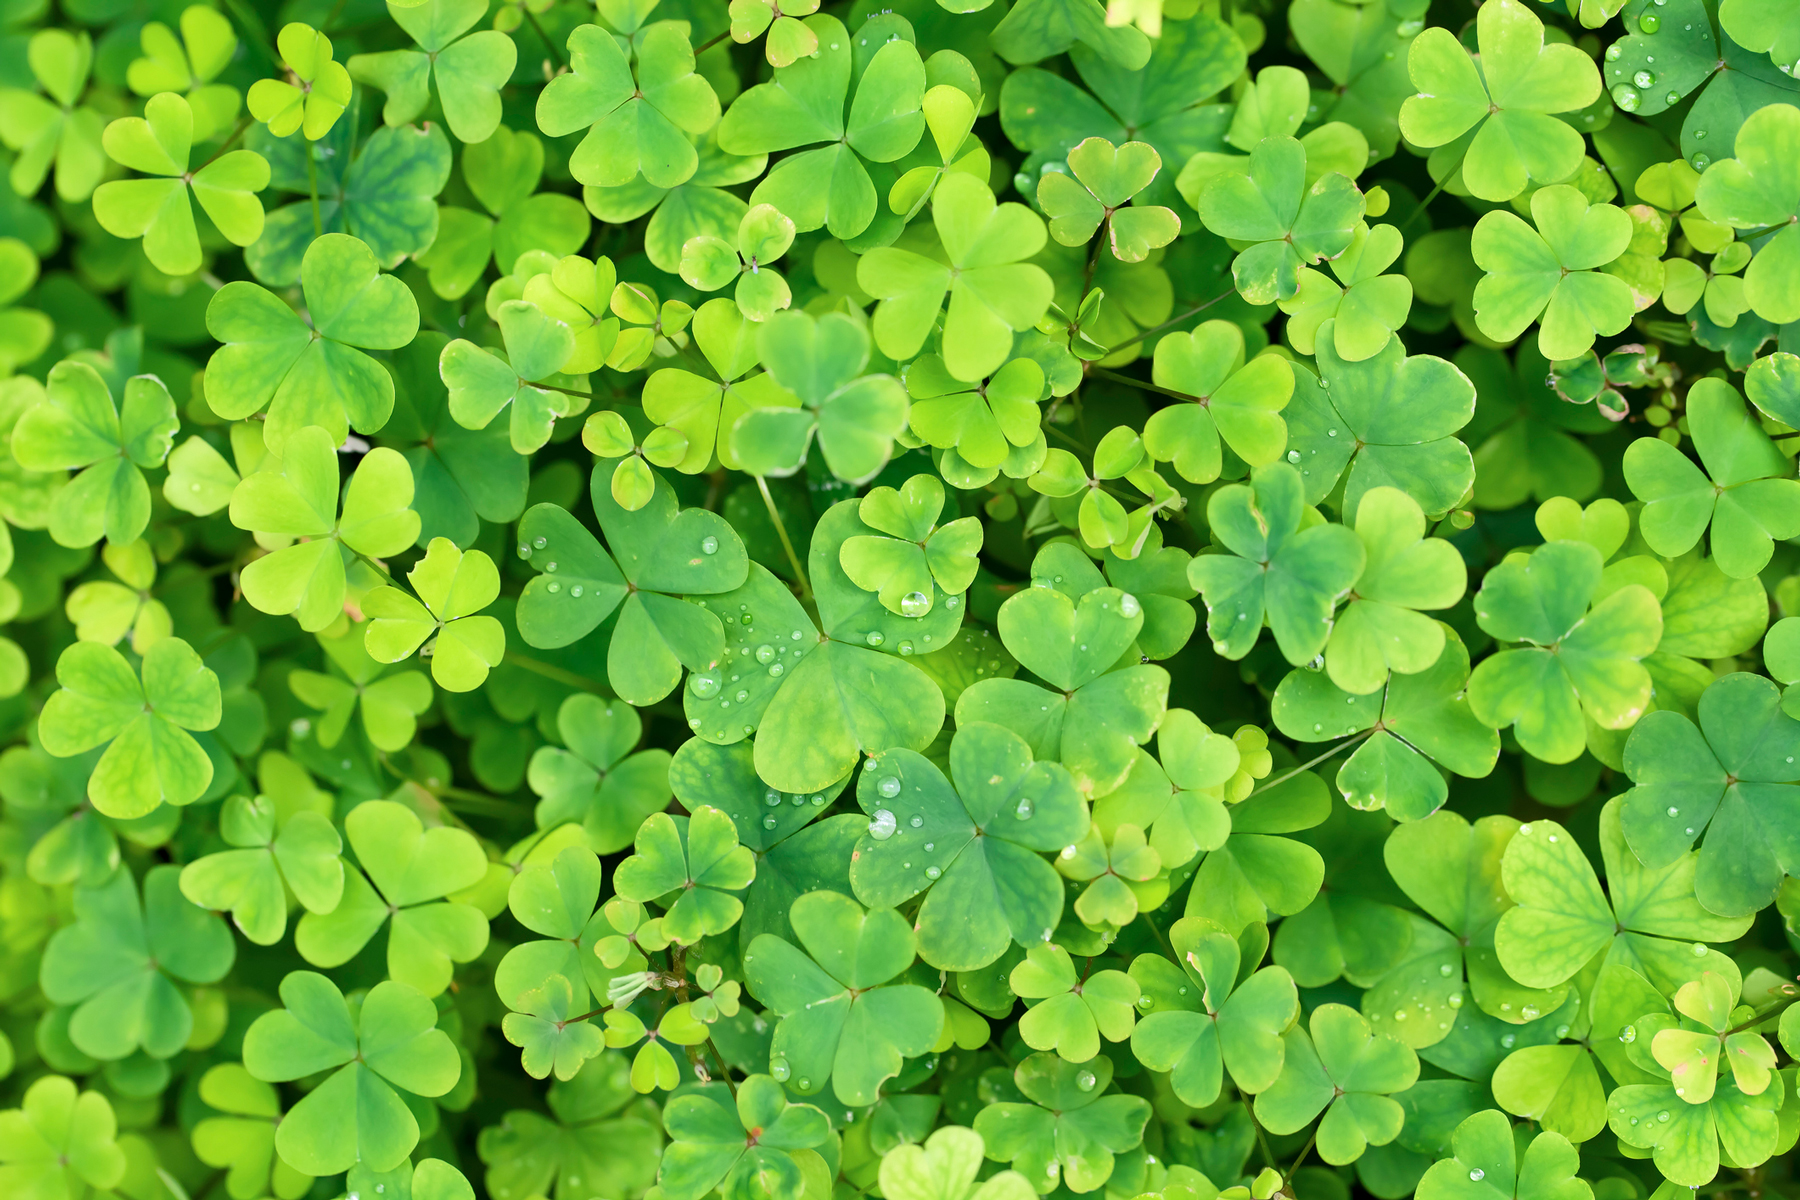 Is It St. Patty or St. Paddy? Chances Are, You're Getting it All Wrong